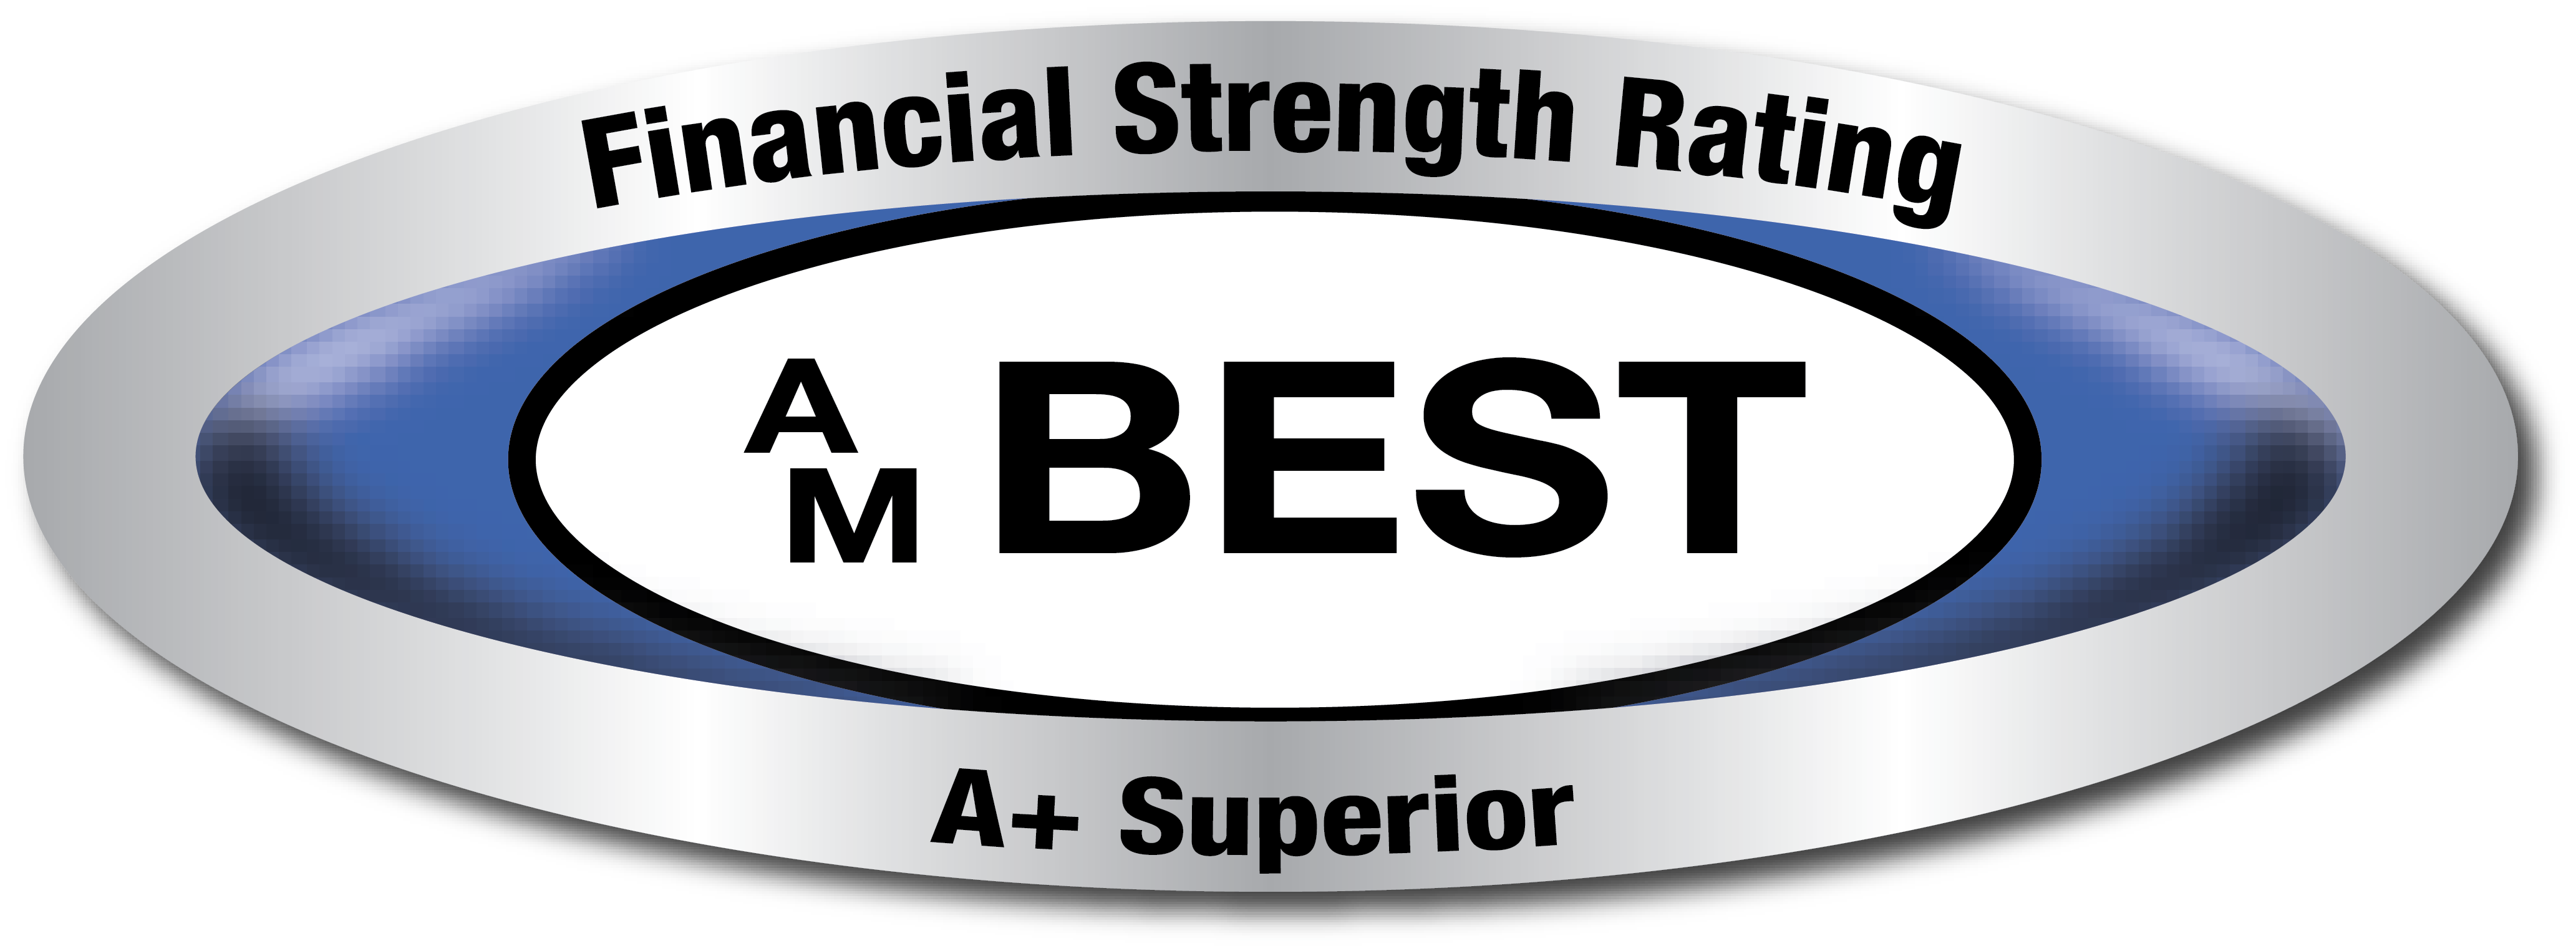 Financial Strength Rating AM Best A+ Superior